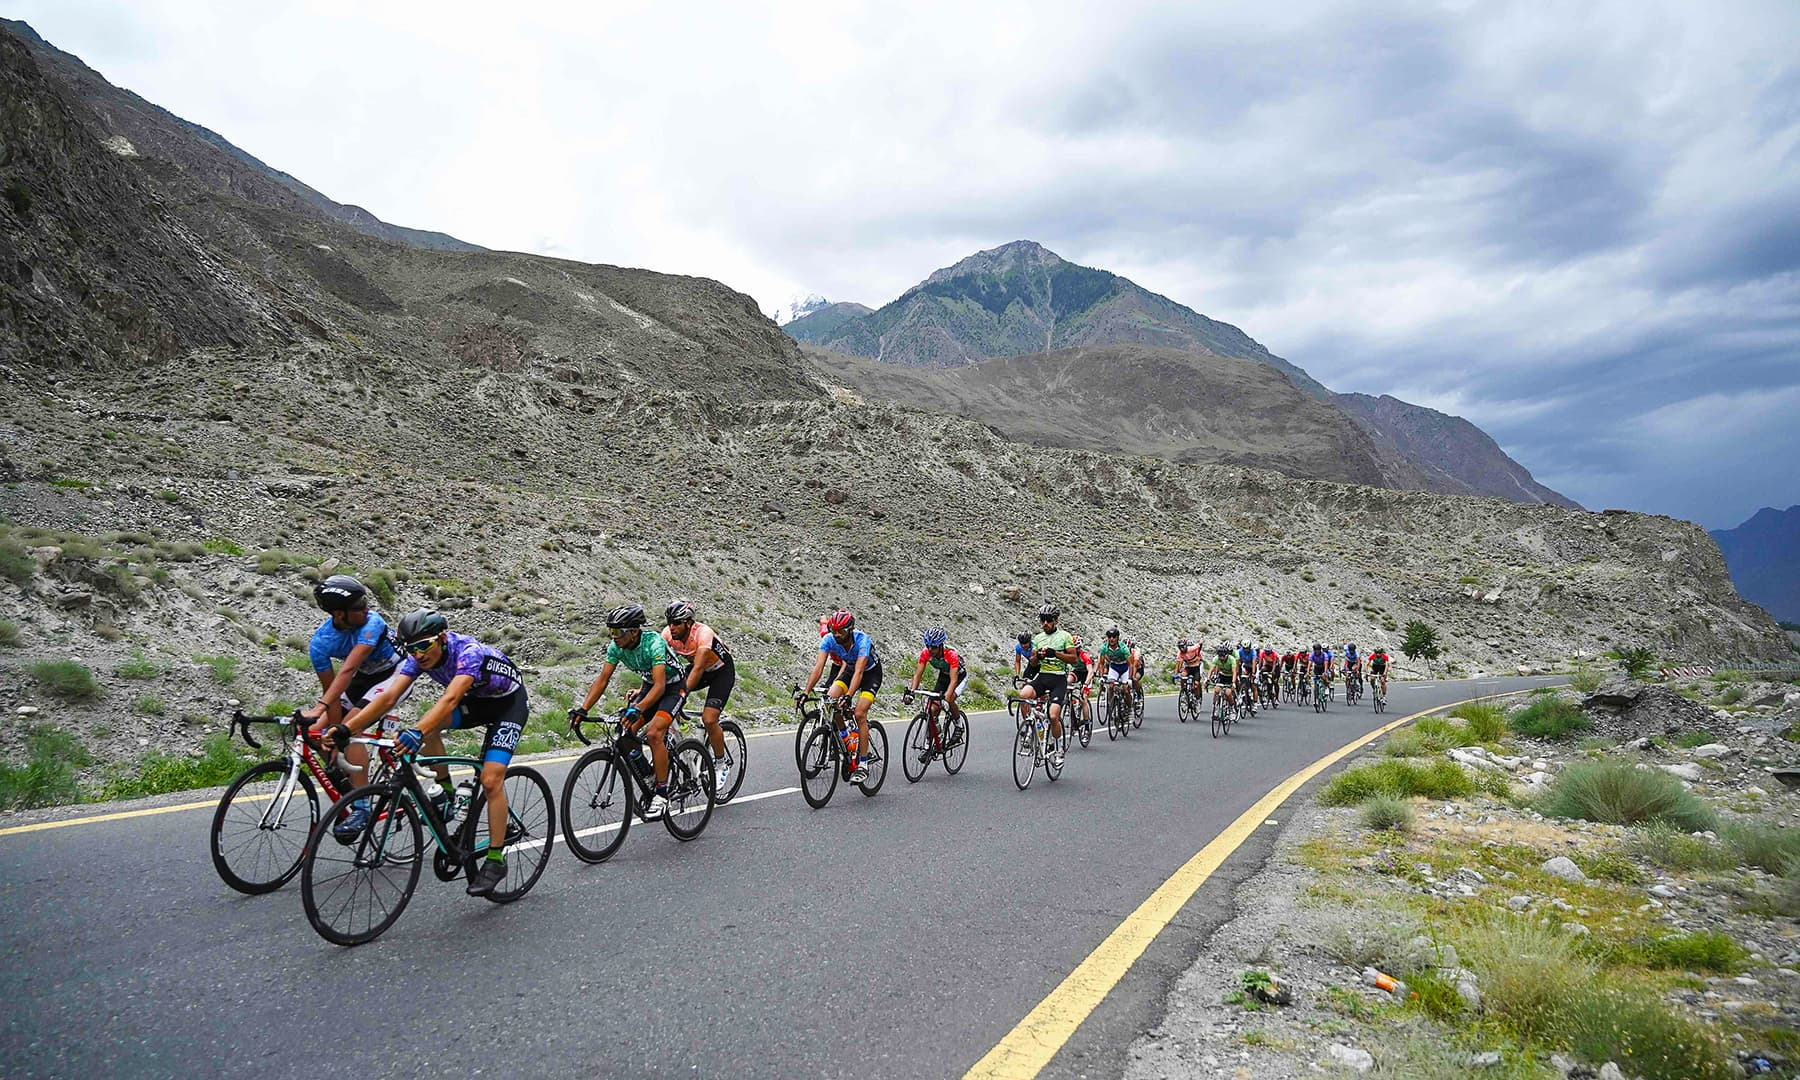 Athletes race along the Karakoram Highway in the Gilgit-Baltistan region that is located near the Chinese border. — AFP